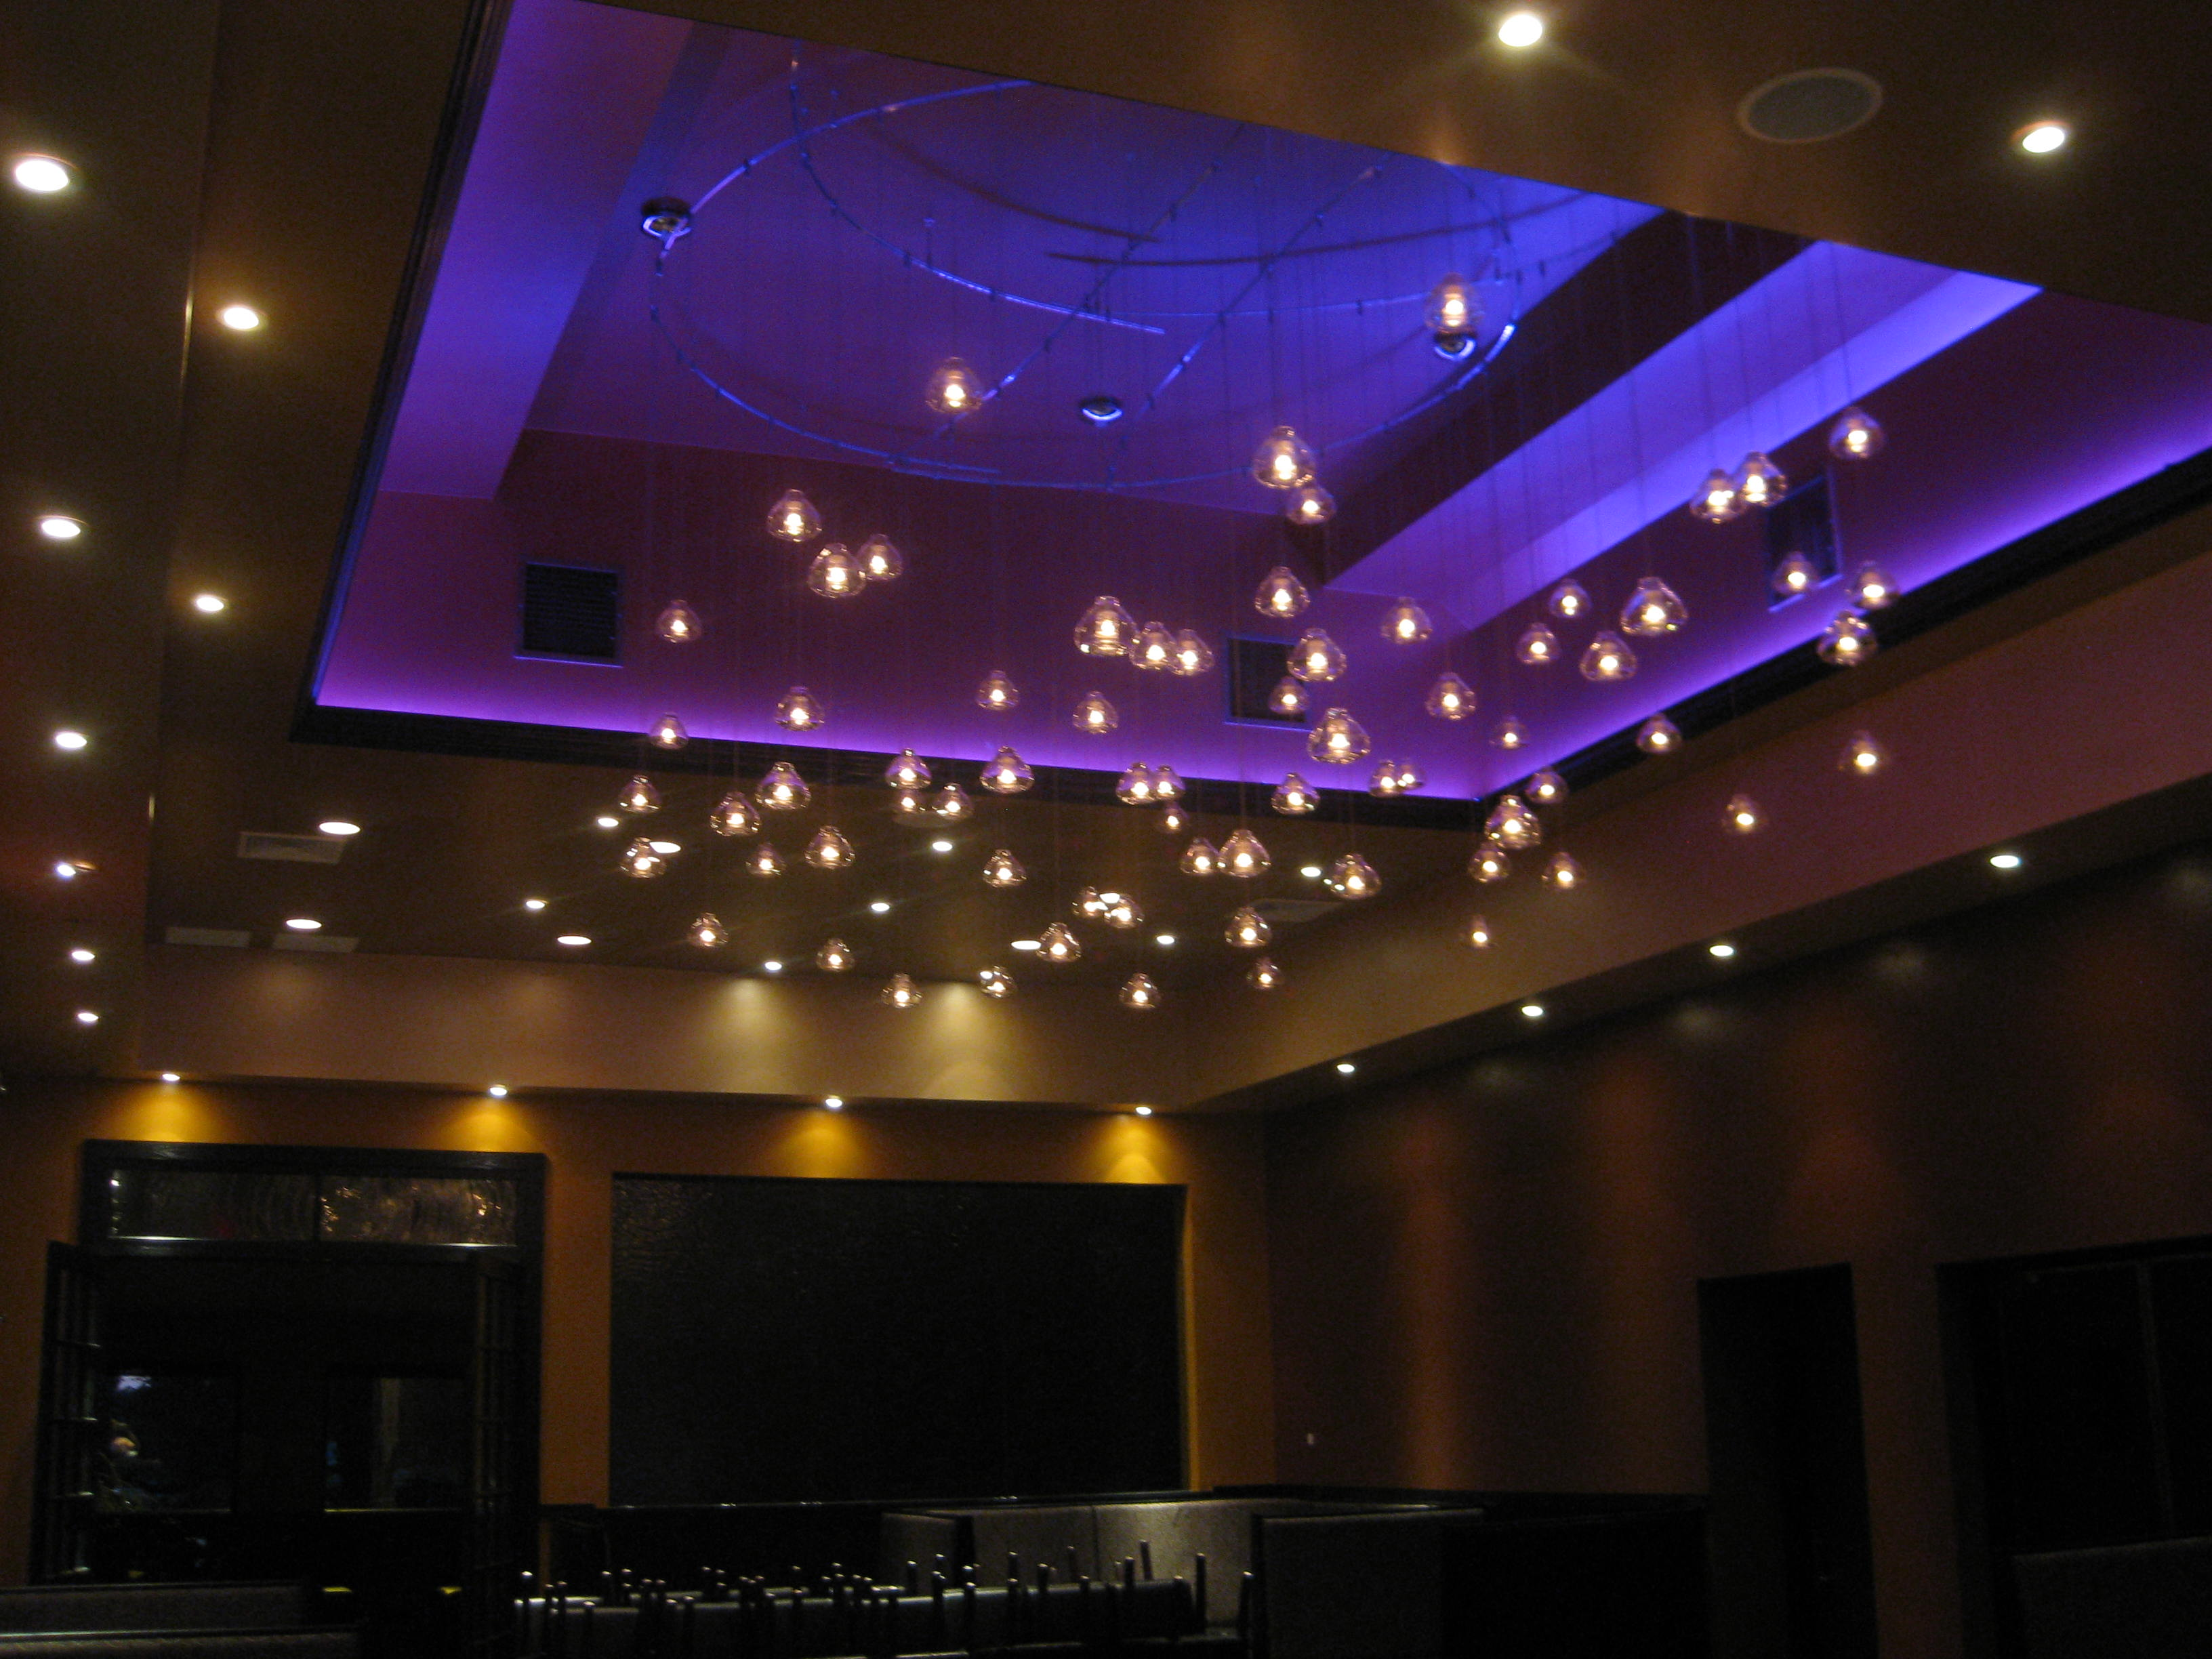 Luchento's Ristrante with RGB LED Lights used in the seating area.